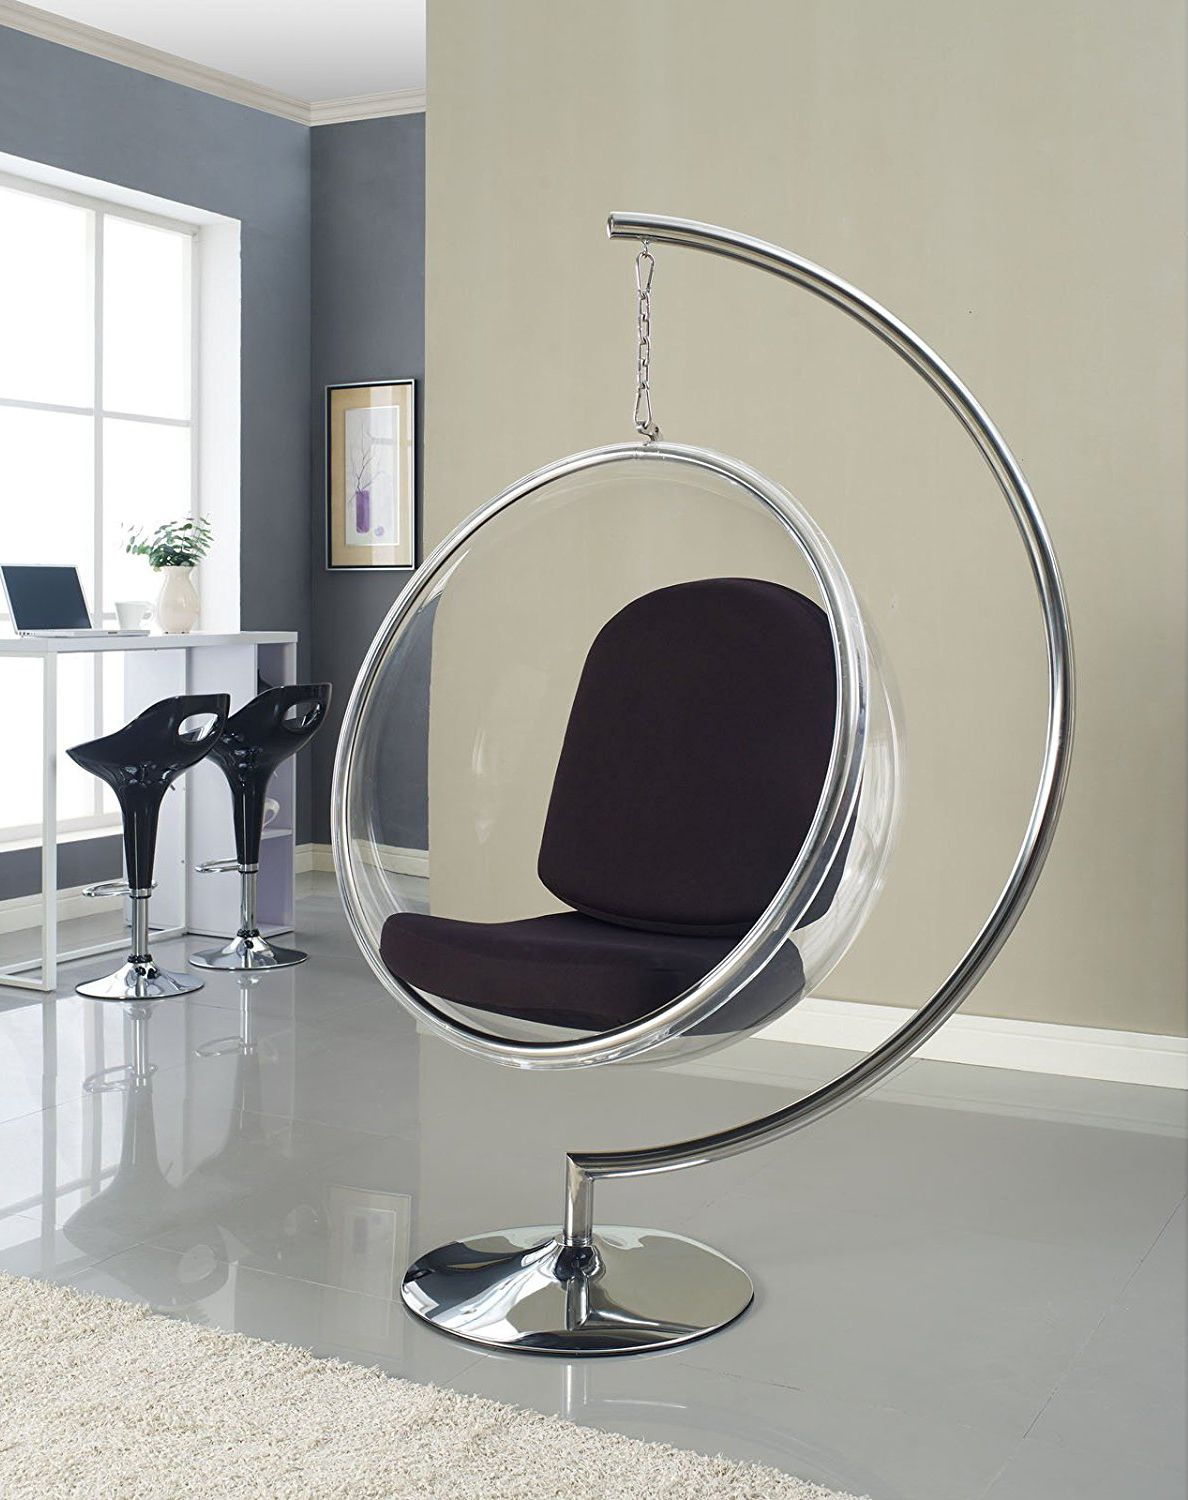 Bubble chair with black pillows by lexmod pinterest bubble chair